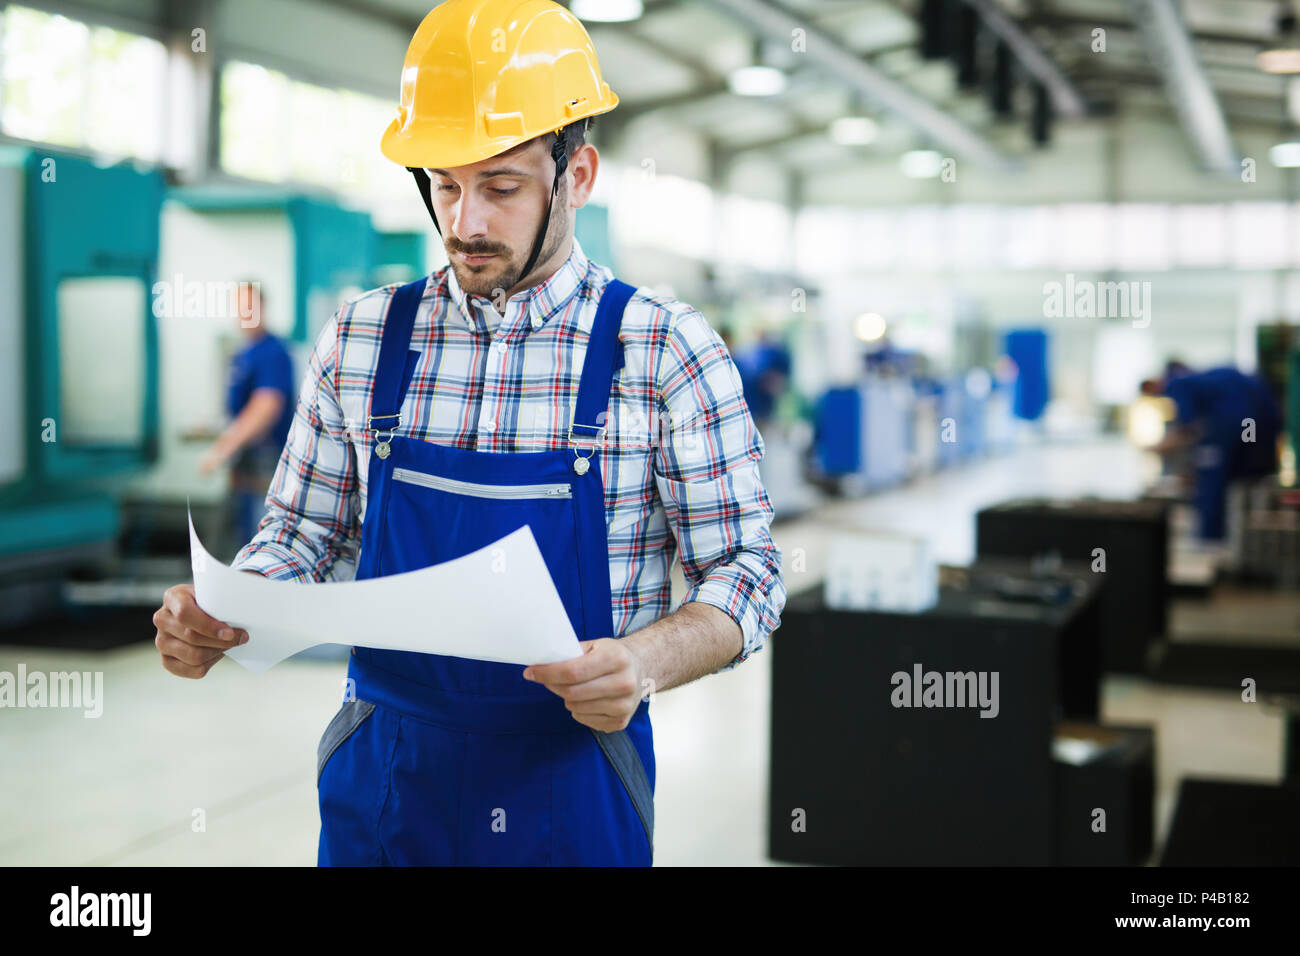 industrial factory employee working in metal manufacturing industry Stock Photo